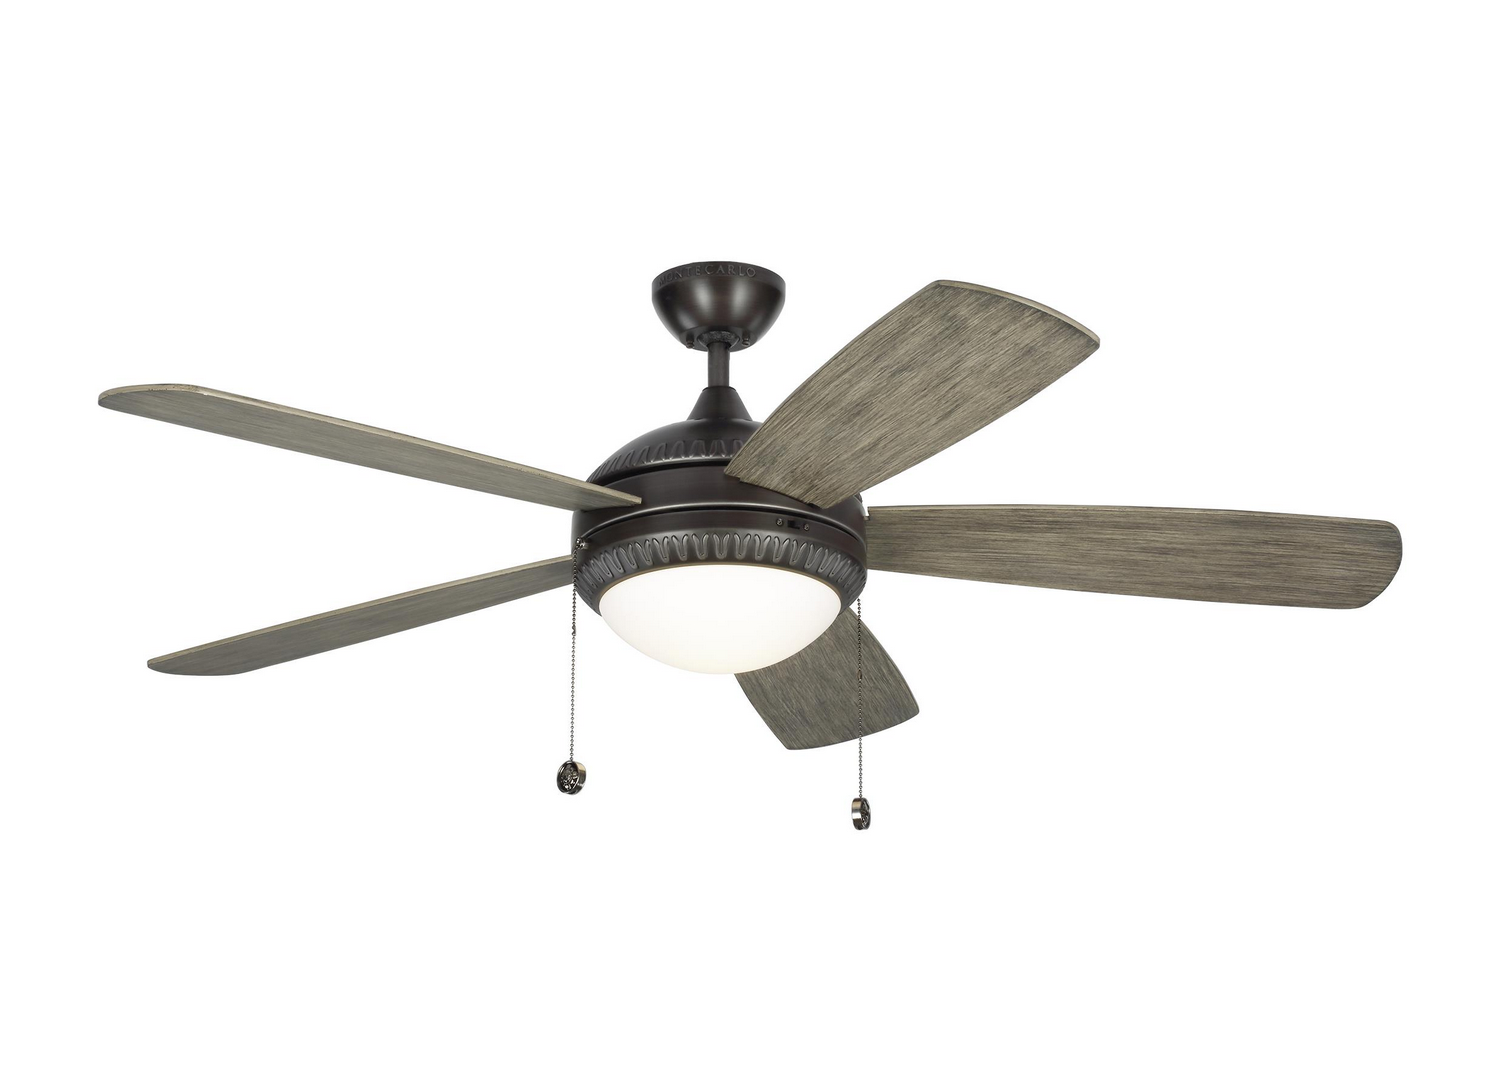 52 inchCeiling Fan from the Discus Ornate collection by Monte Carlo 5DIO52AGPD